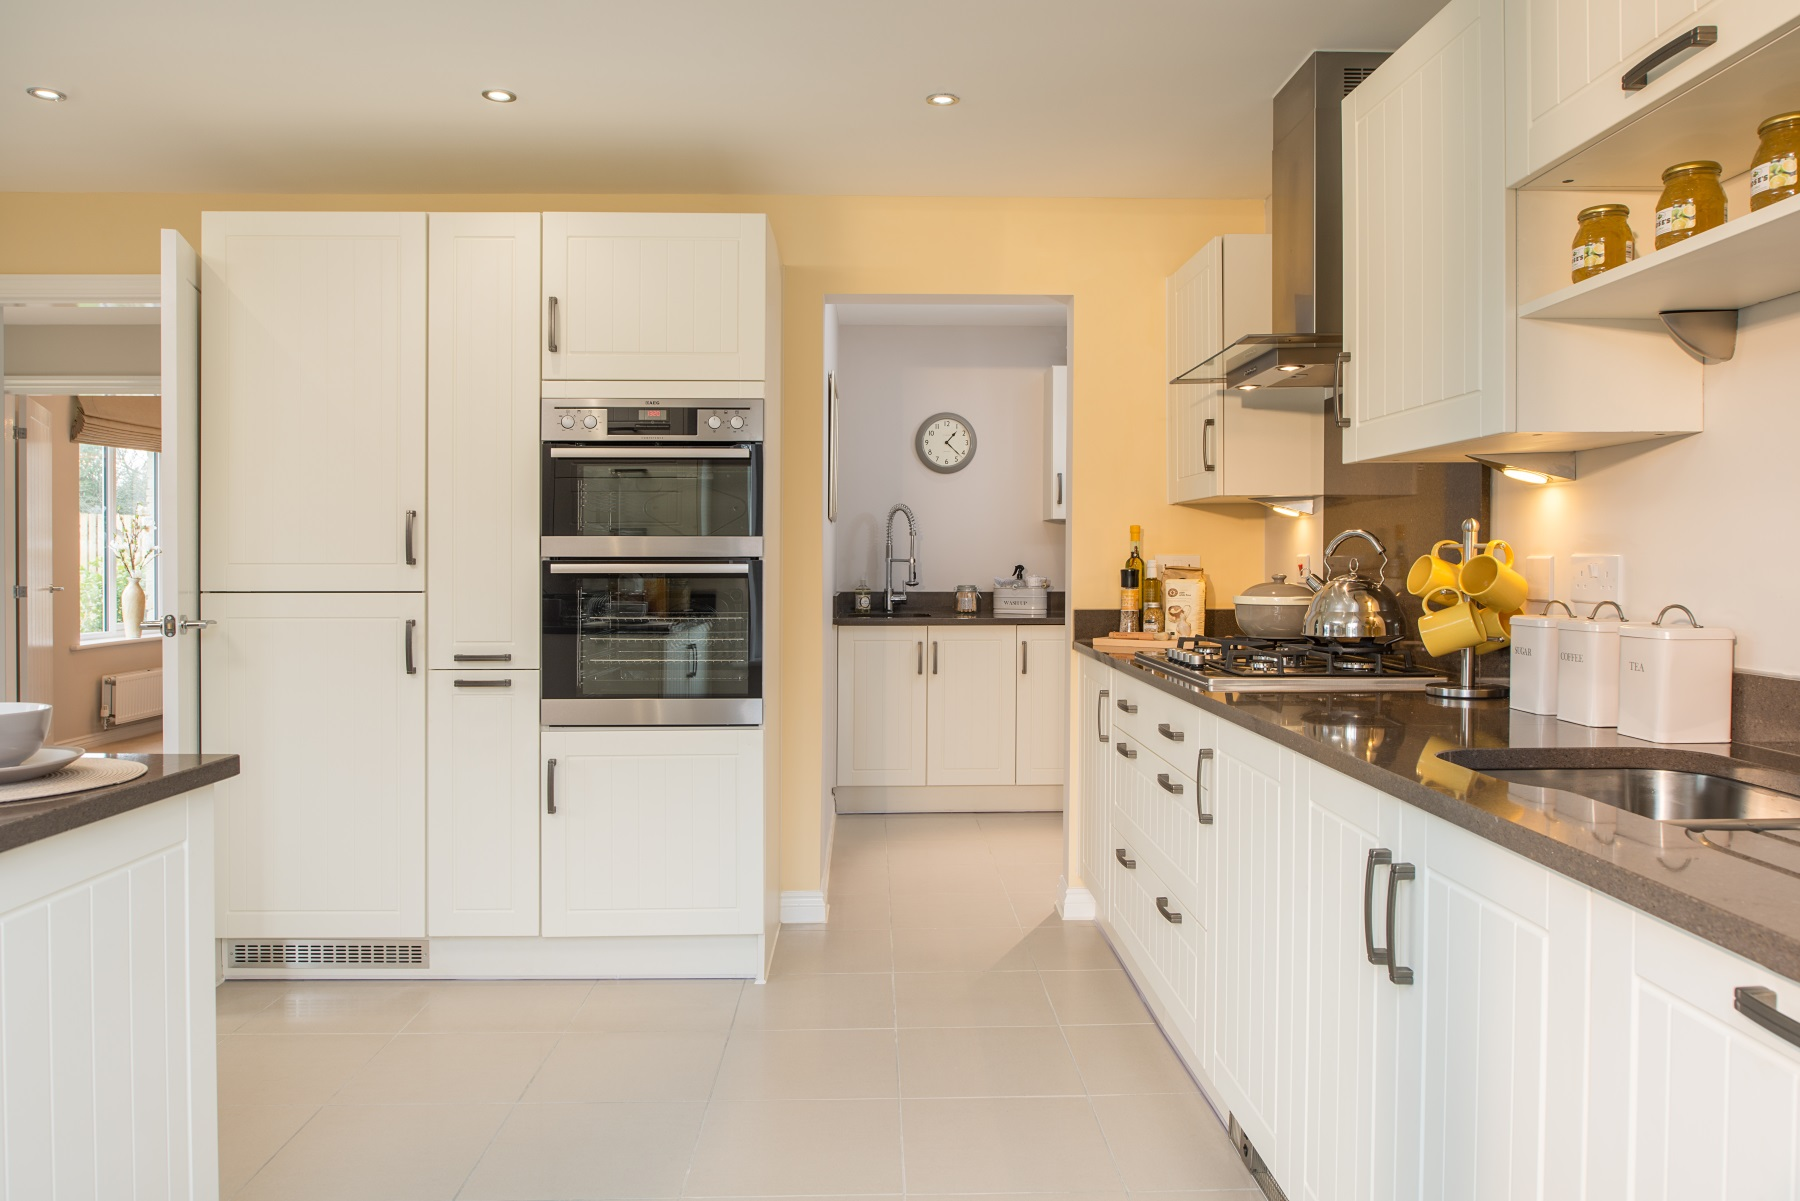 TW Exeter - Mayfield Gardens - Trusdale example kitchen